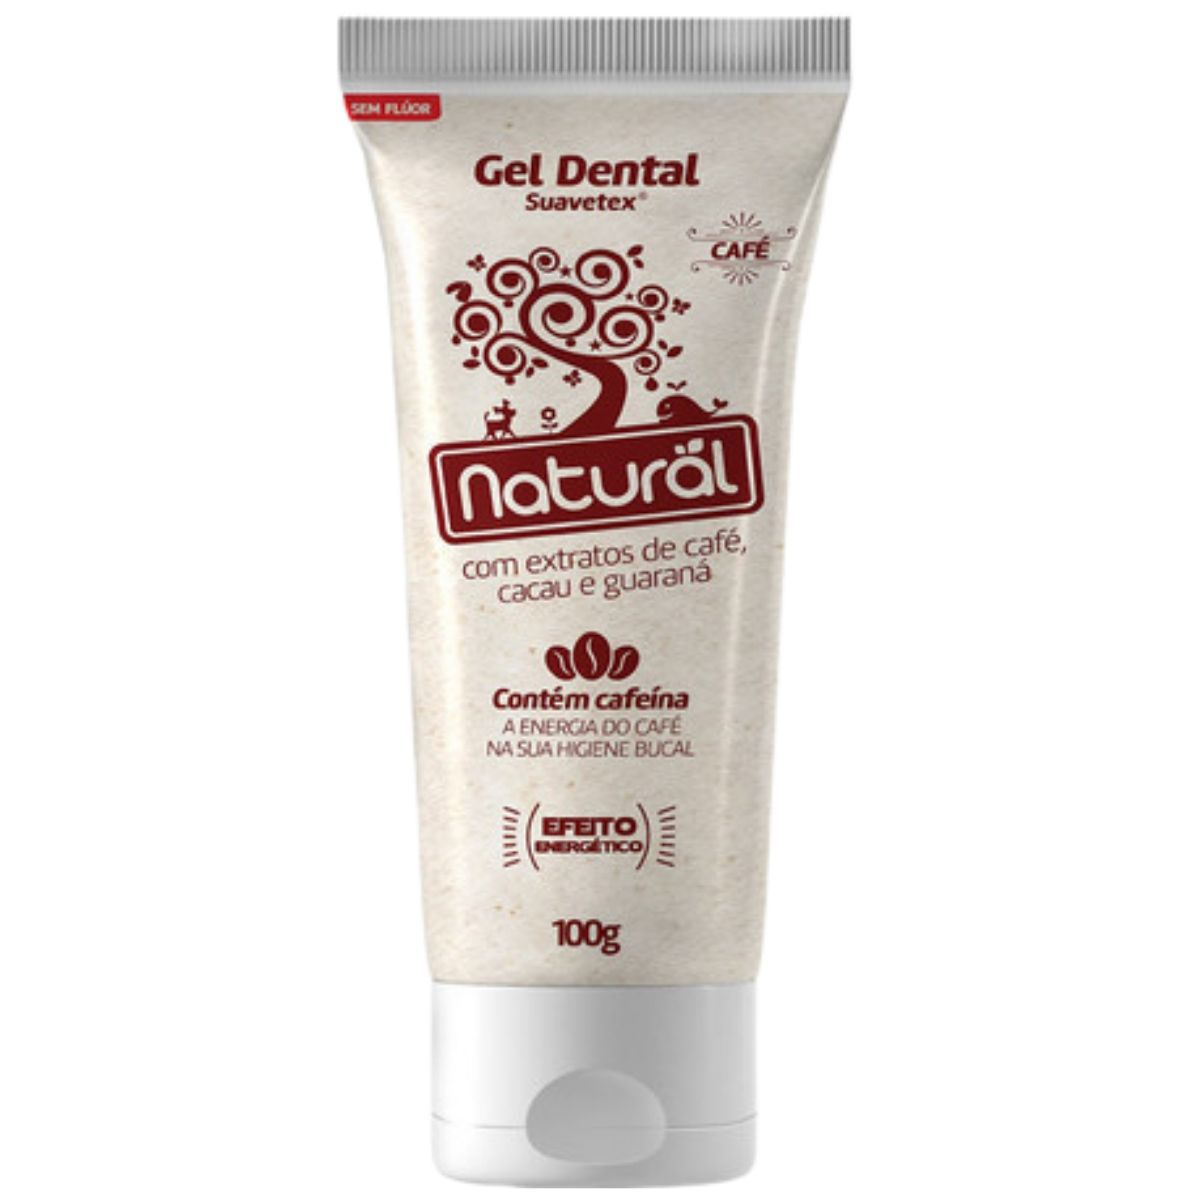 Creme Dental Suavetex Orgânico Natural C/ Extratos de Café, Cacau e Guaraná - 100g